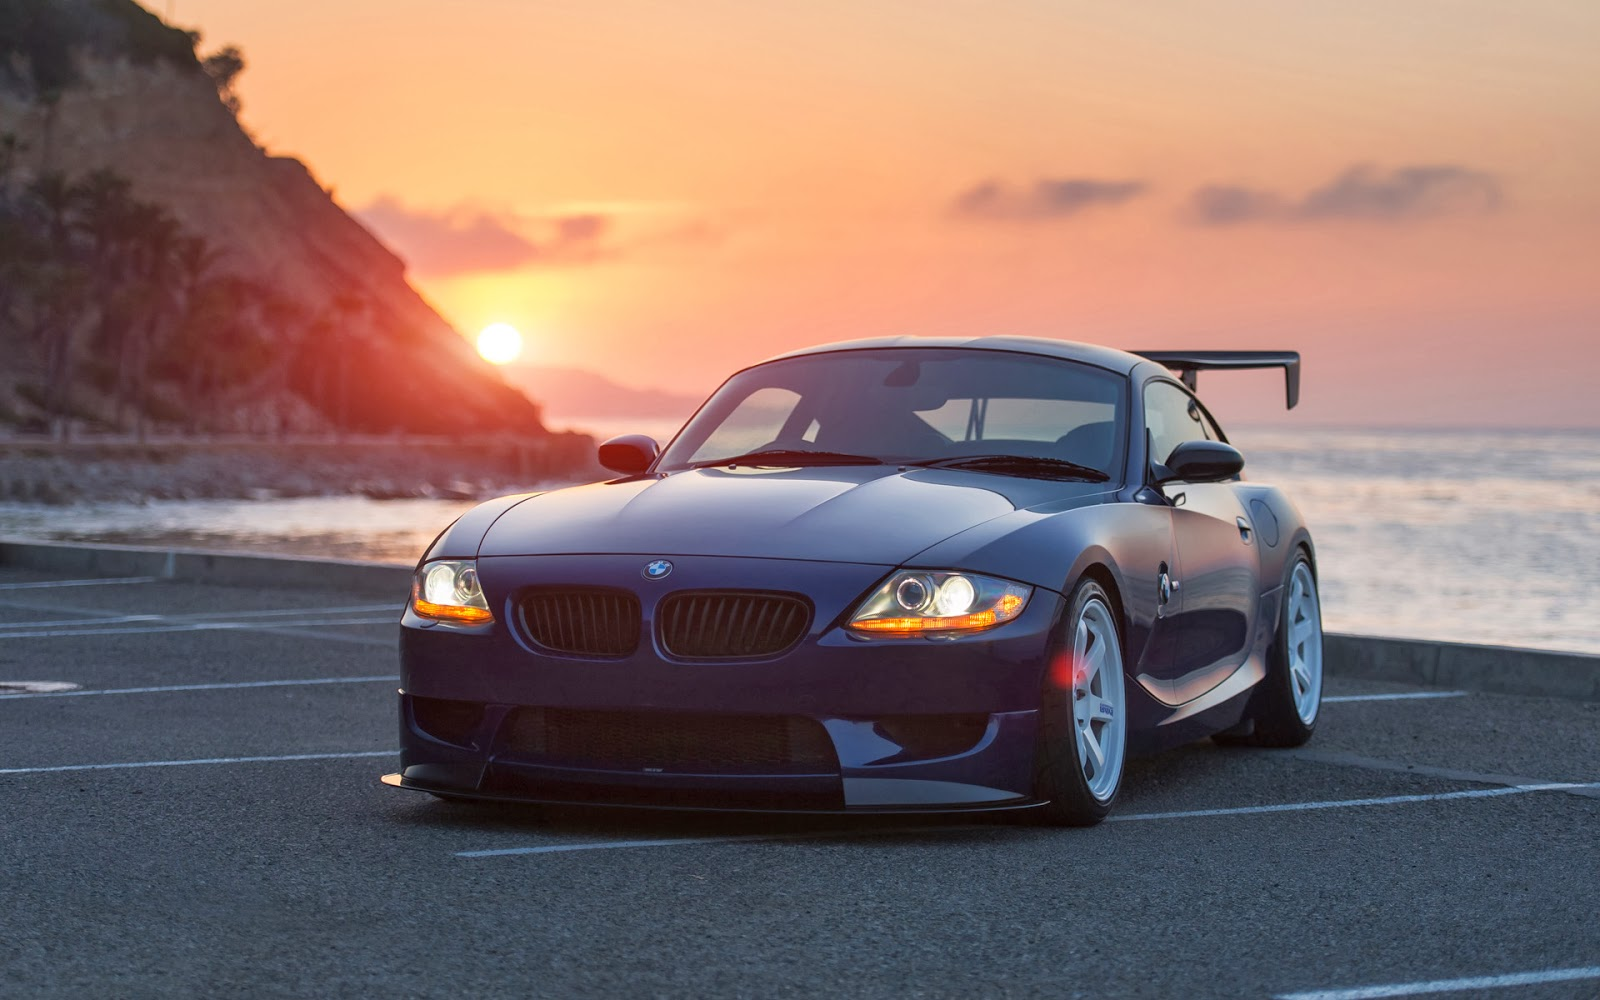 Wallpaper BMW Z4 bilder